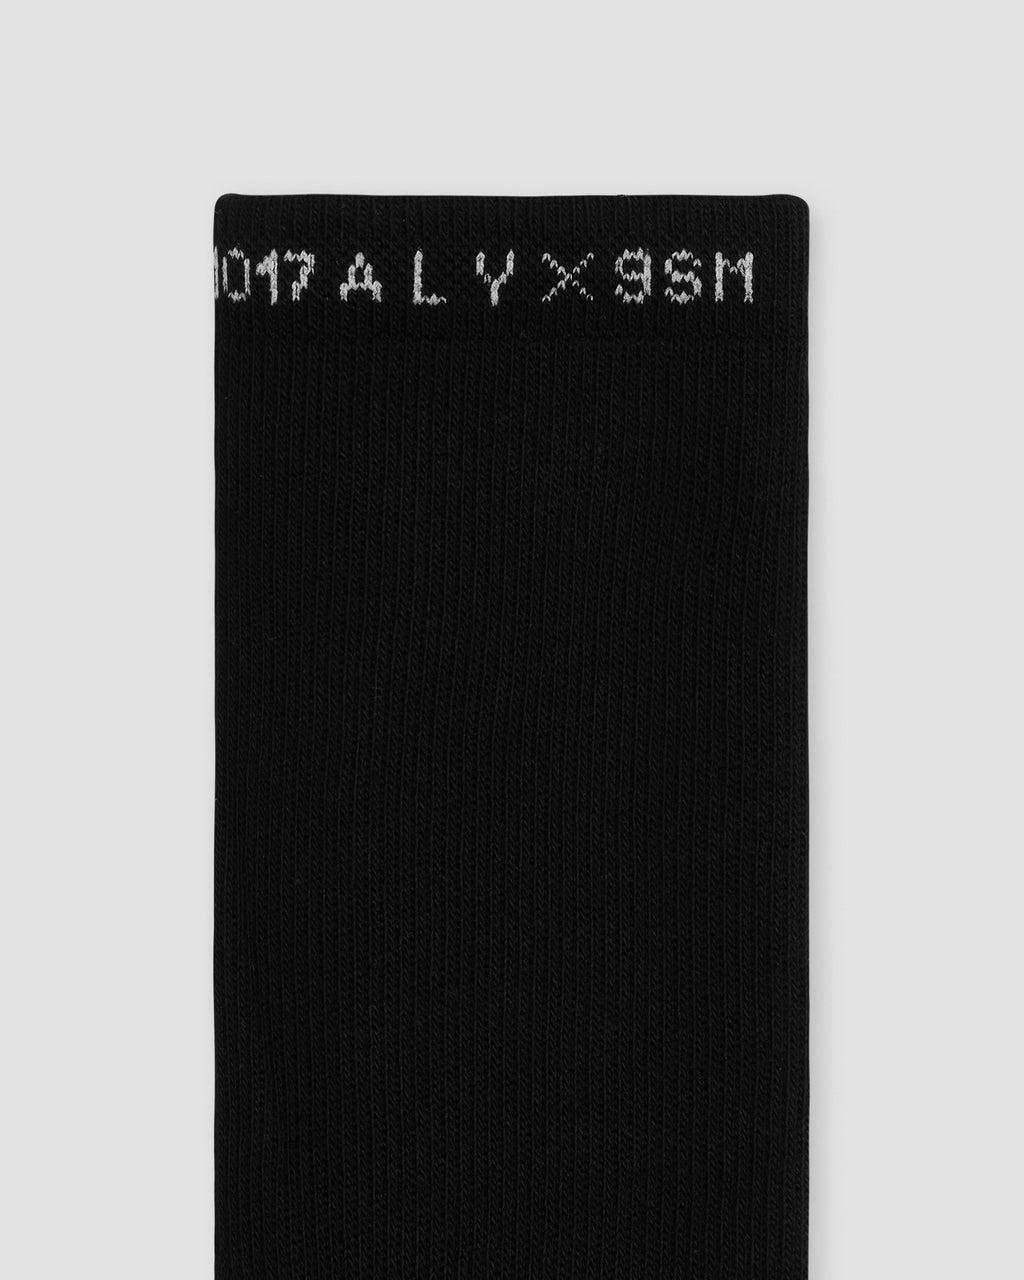 1017 ALYX 9SM | 3 PACK SOCKS | Sock | Accessories, Black, Brown, Google Shopping, Man, S20, S20EXSH, SOCKS, UNISEX, White, Woman